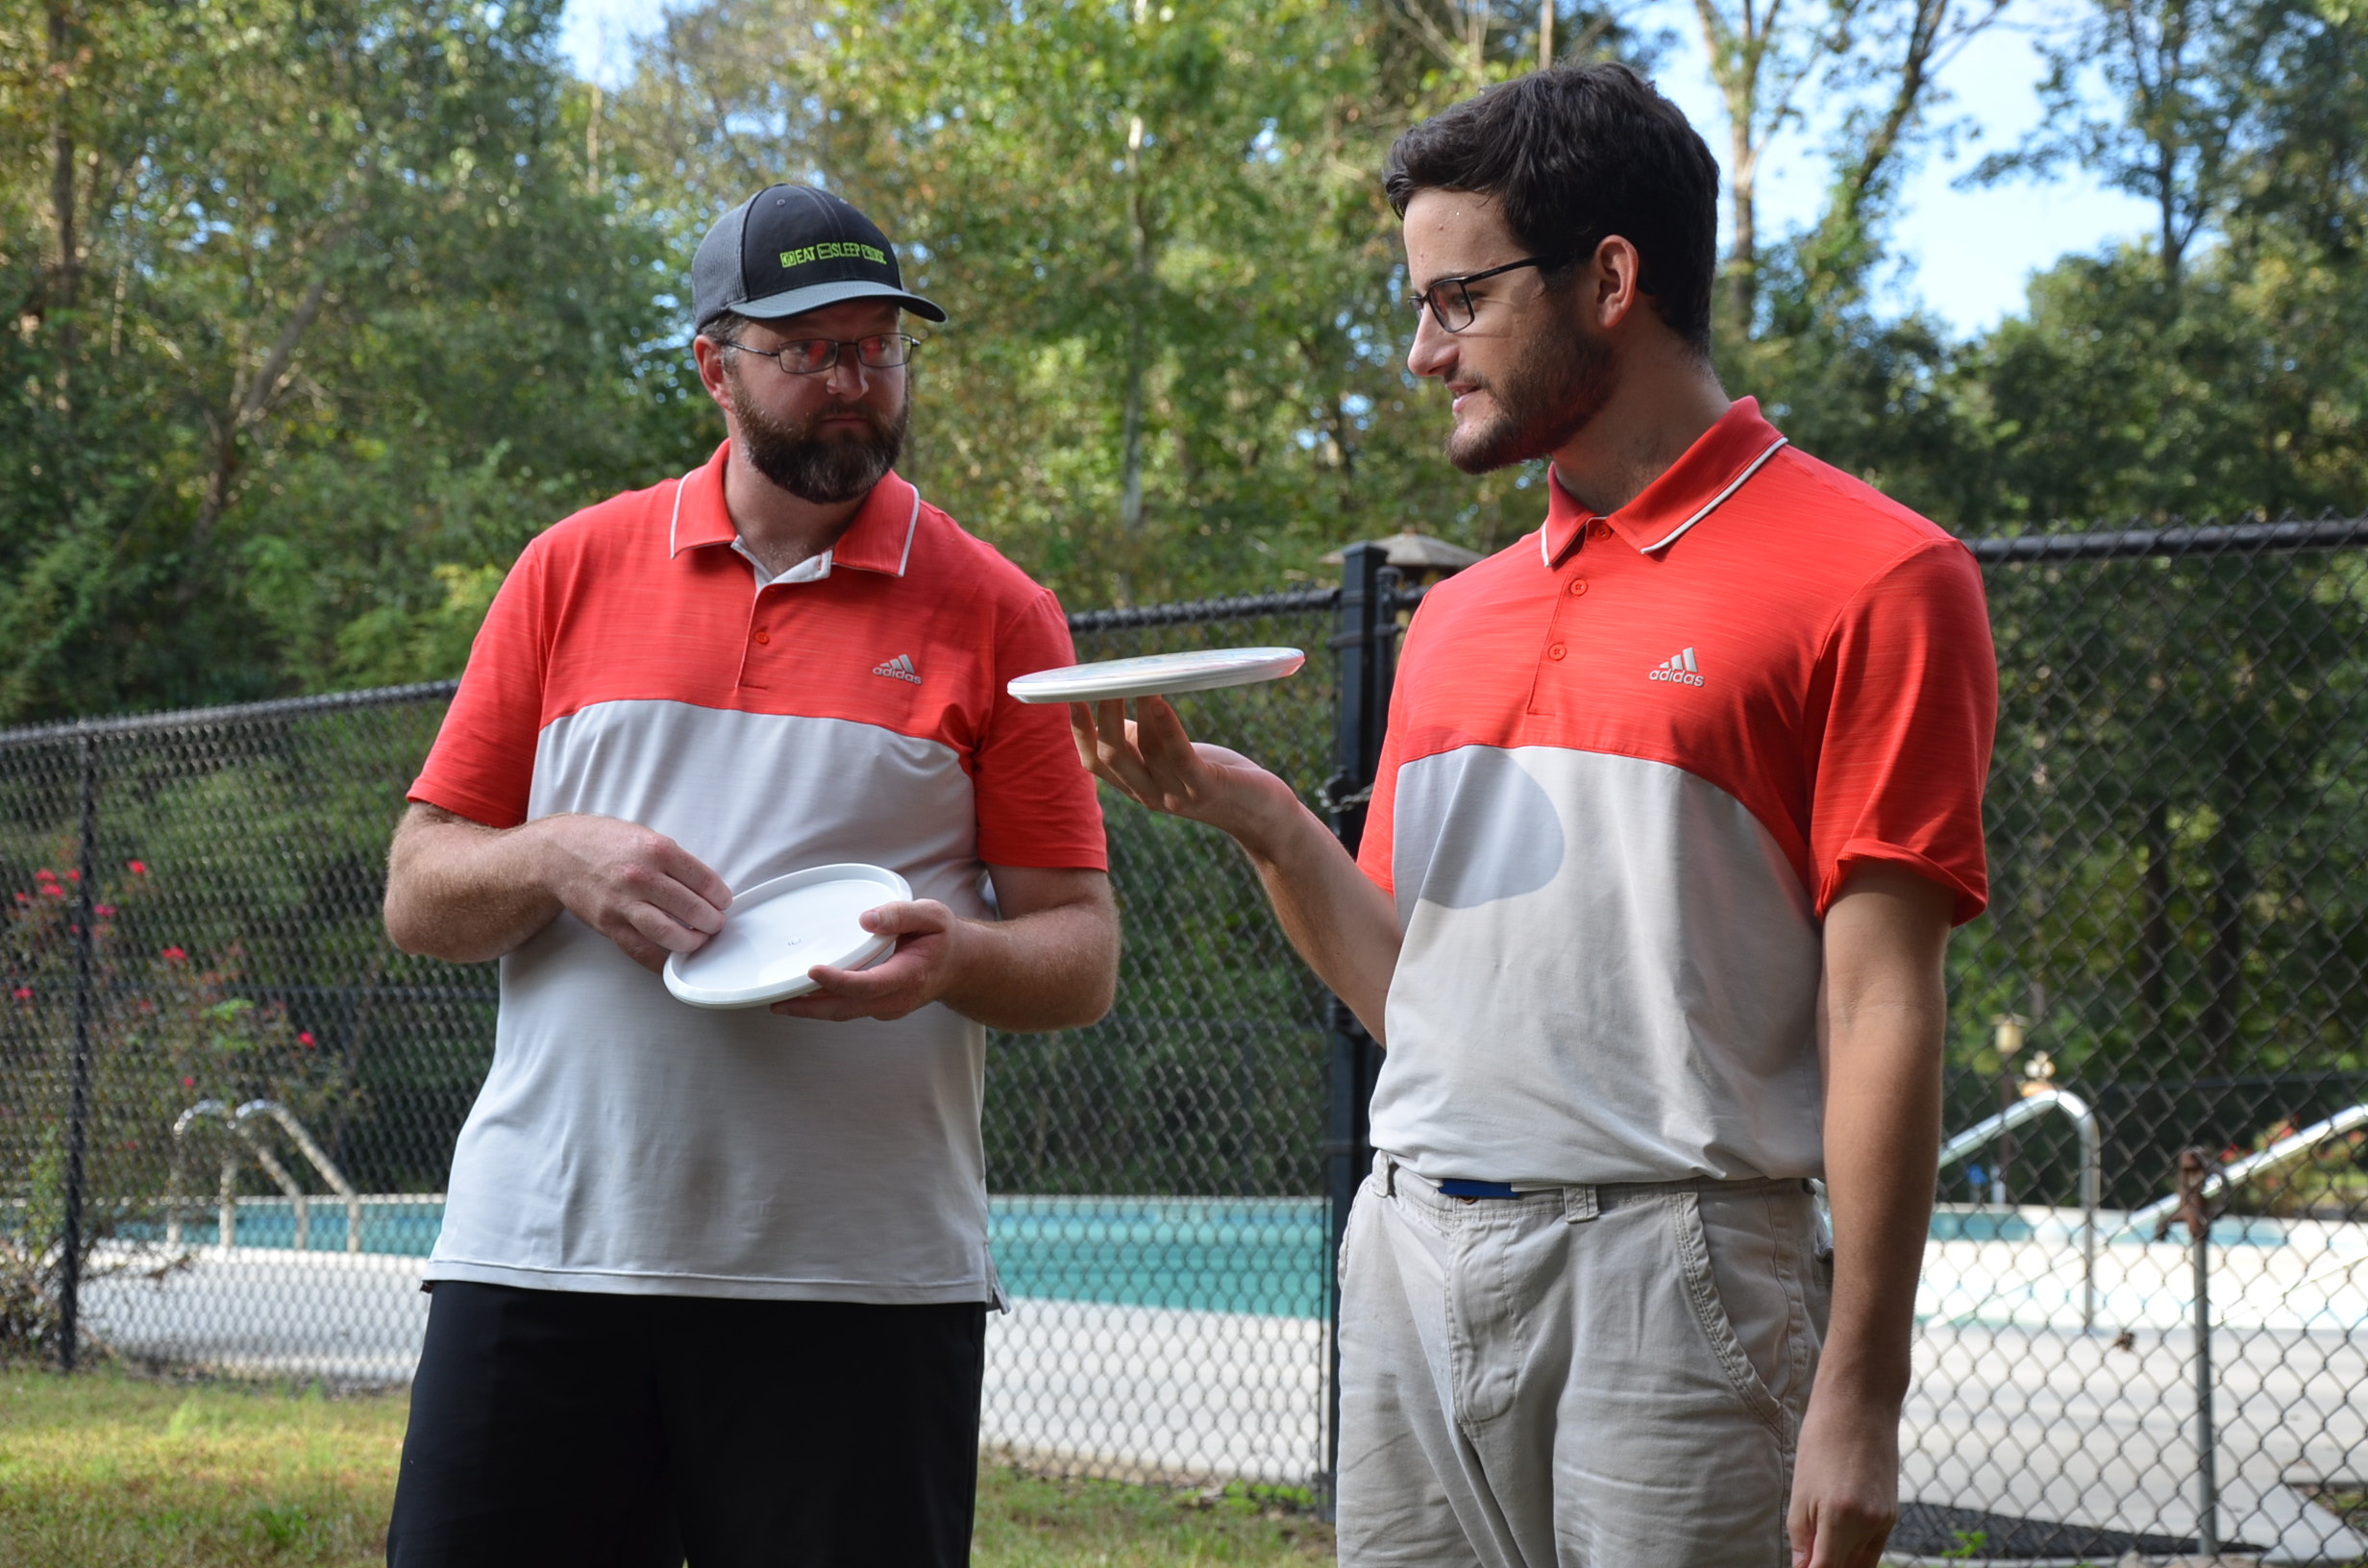 James Hopkins (left) and Aaron Shindledecker get to know their trophy discs after winning USDGC Doubles for the second time in a row.